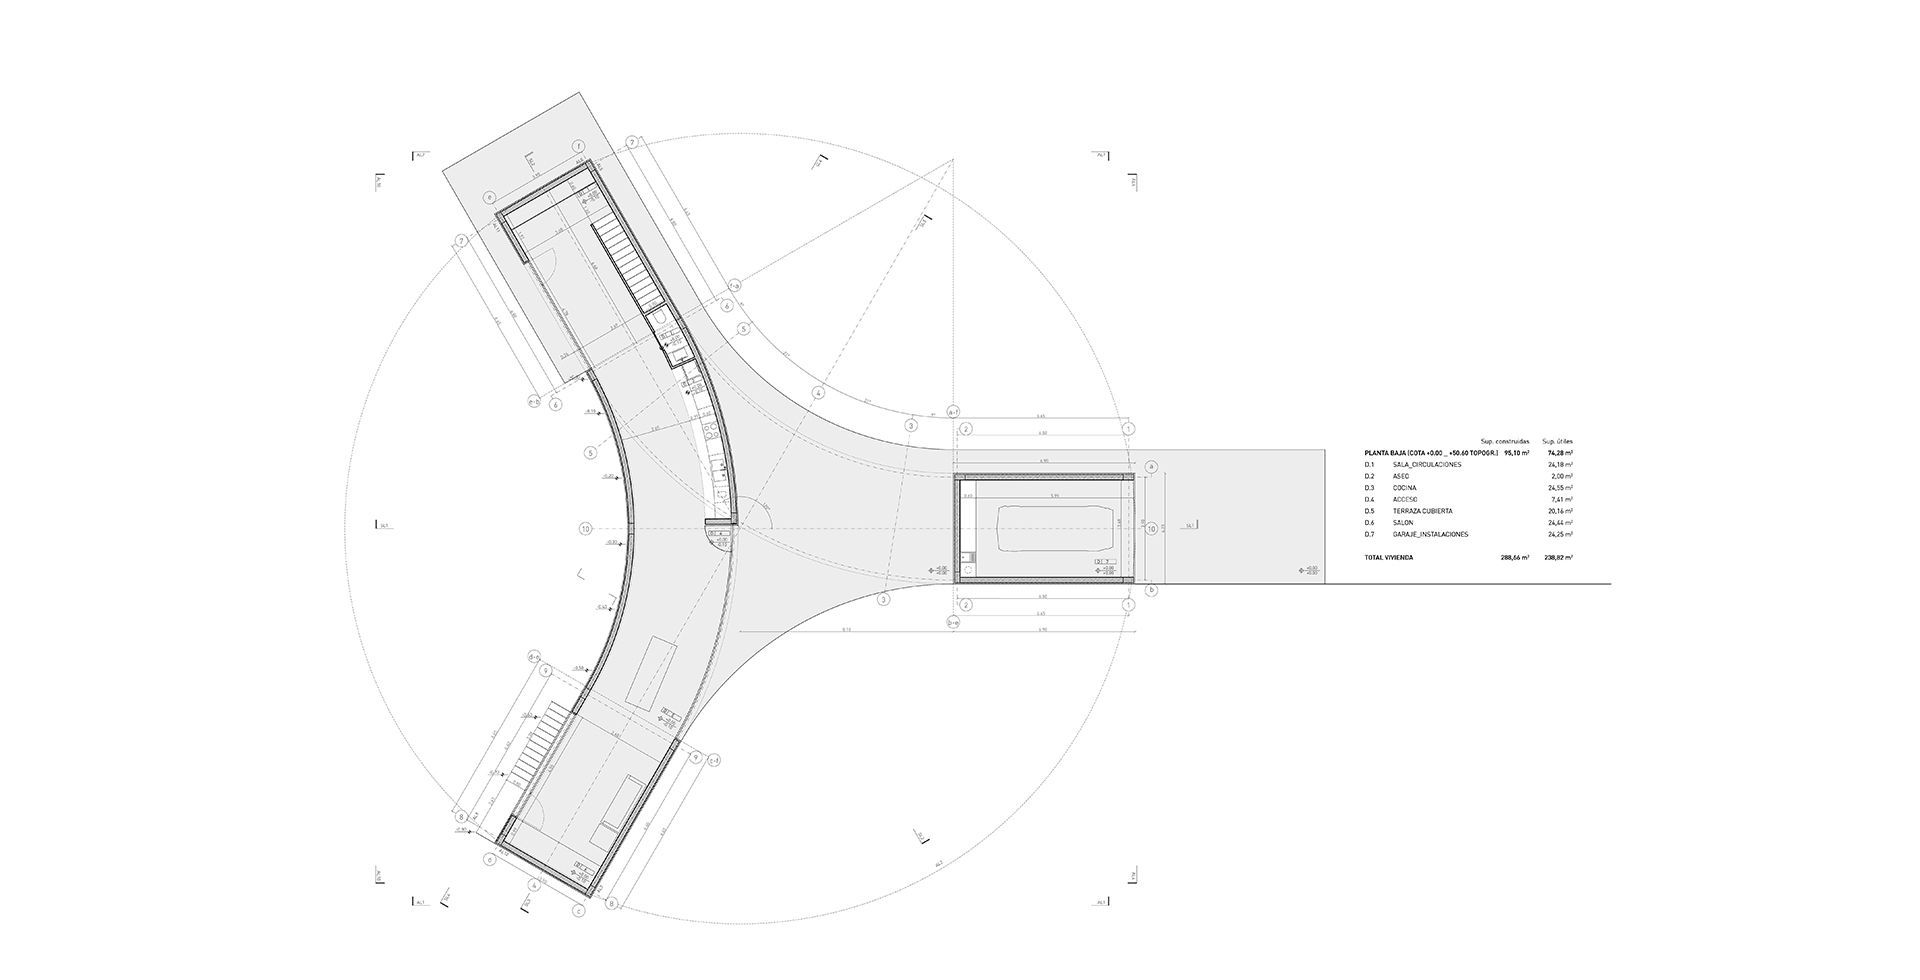 House In An Olive Grove Fran Silvestre Arquitectos Baja Boat Electrical Schematic By The Grout Same Criteria Are Applied To Rest Of Building Elements Using Local Traditional Materials As Time Goes These